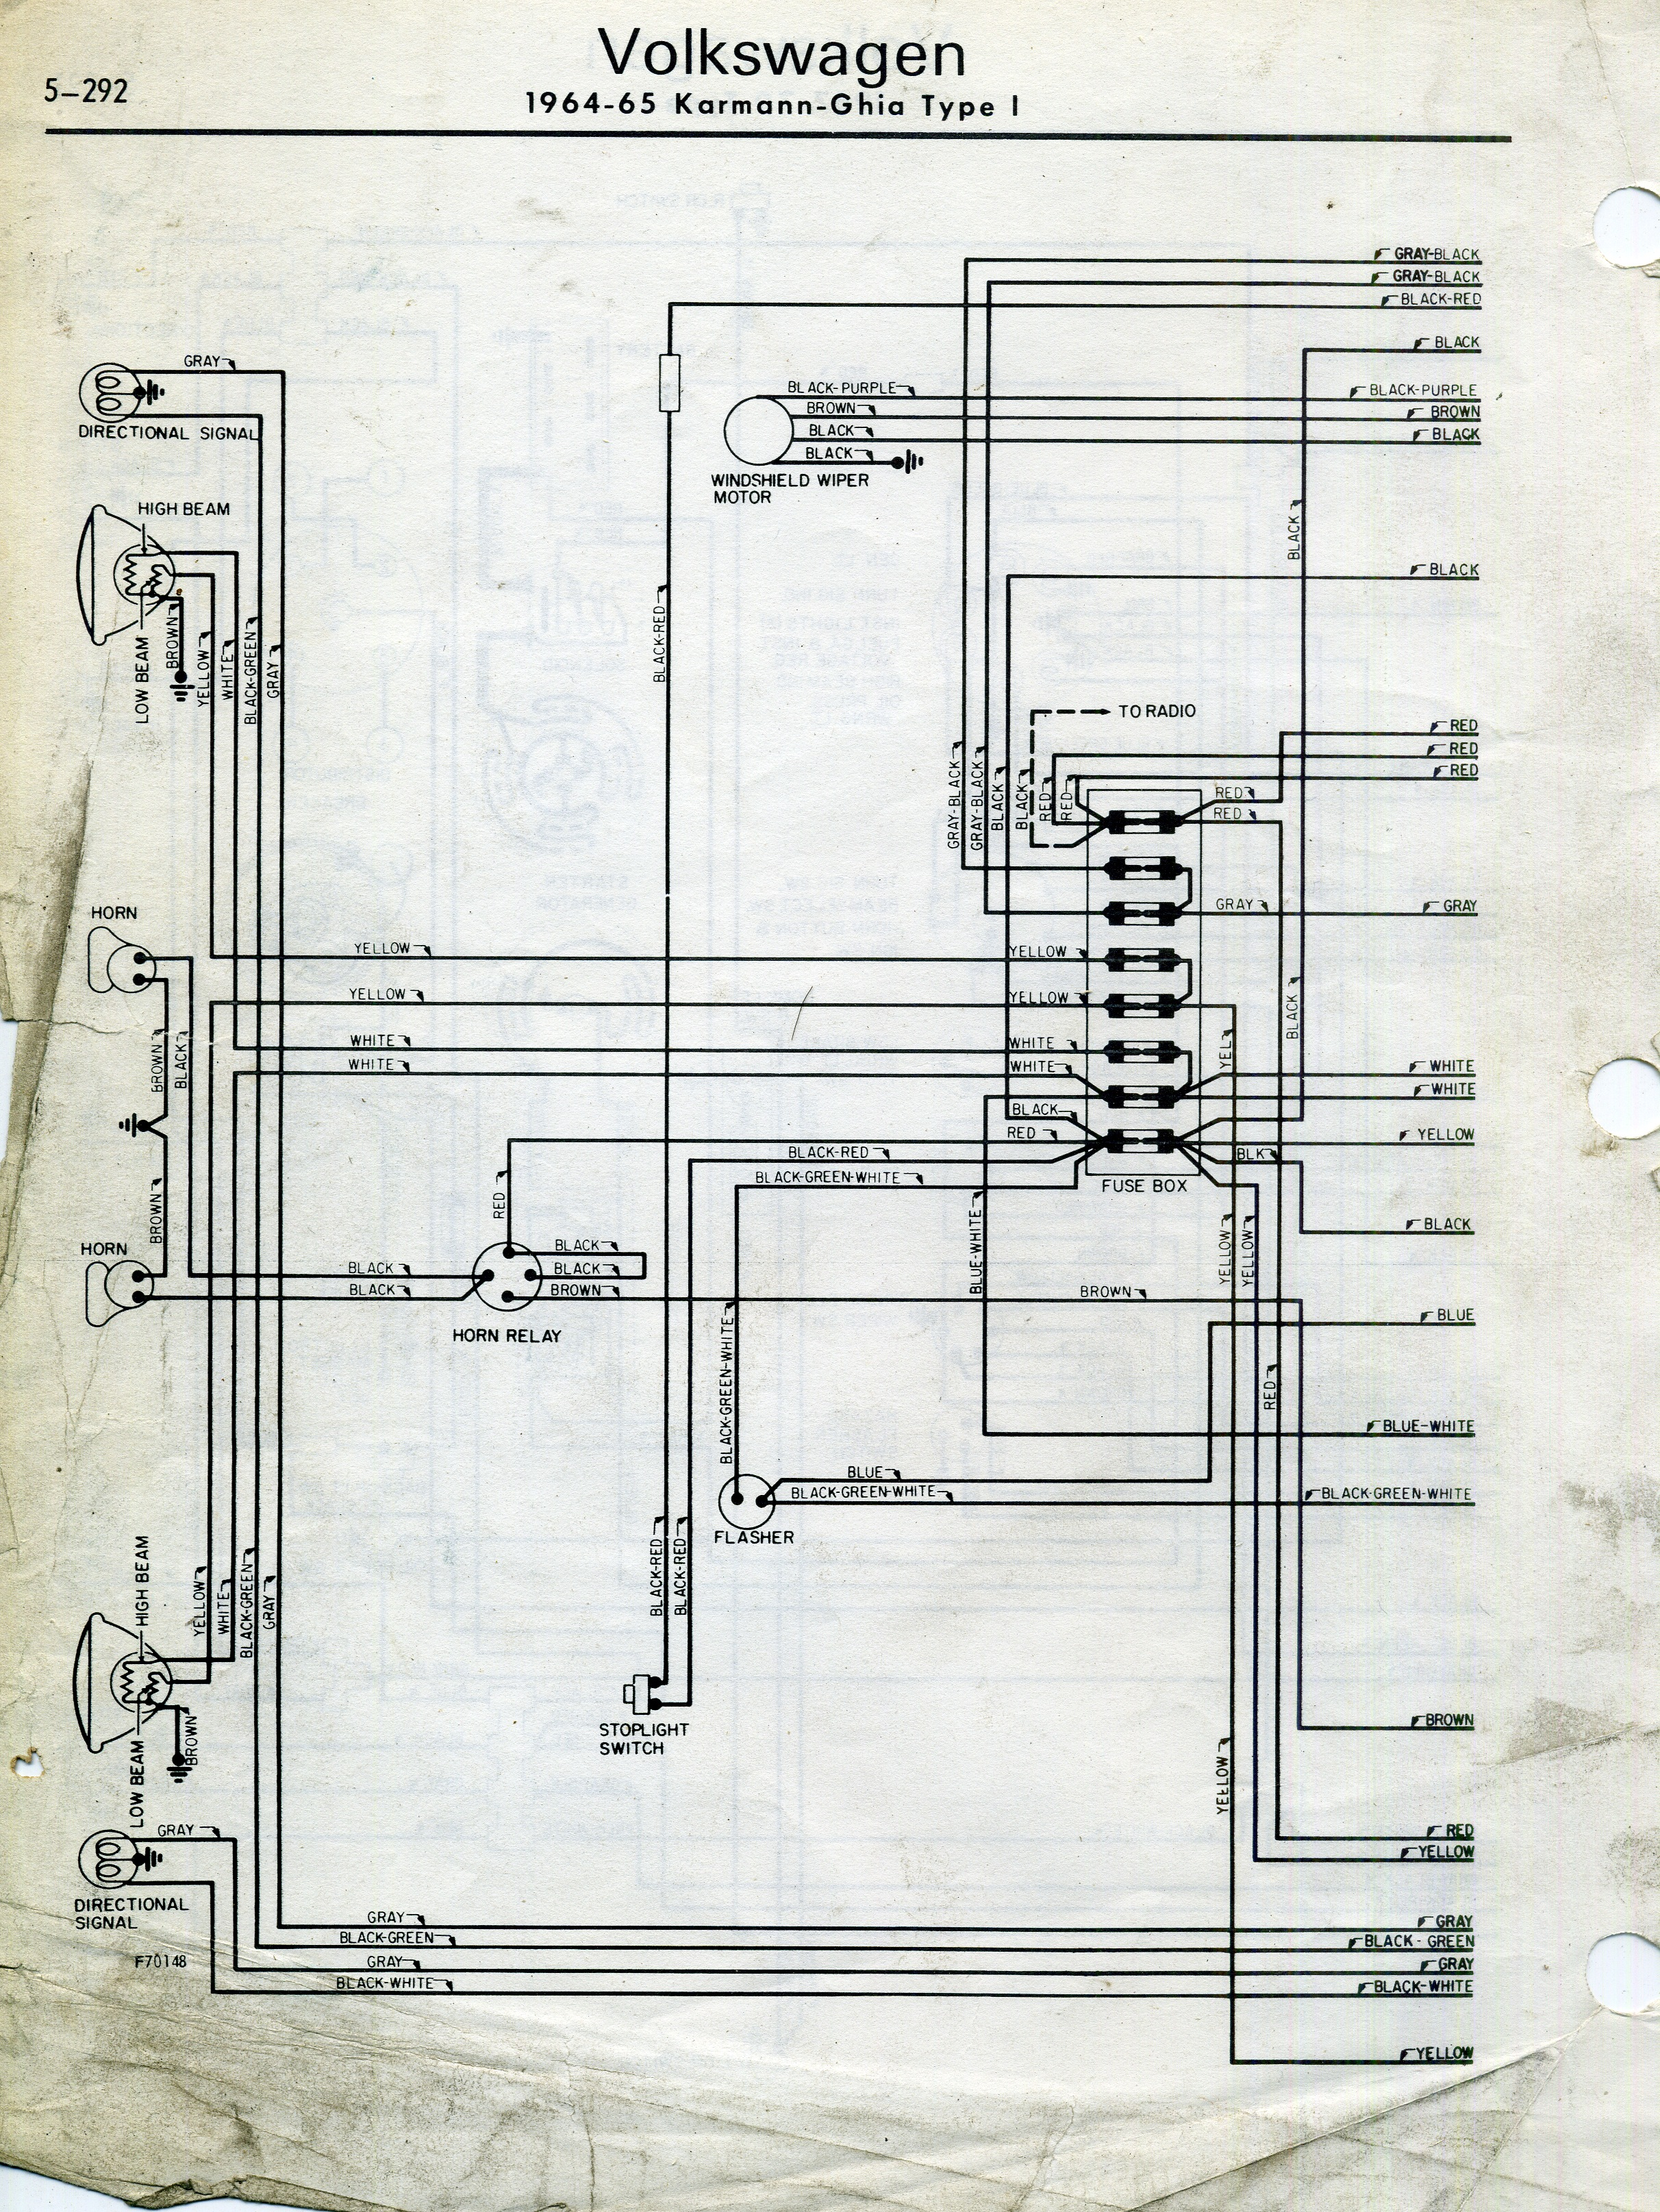 thesamba.com :: karmann ghia wiring diagrams 1974 vw karmann ghia wiring diagram ghia wiring diagram